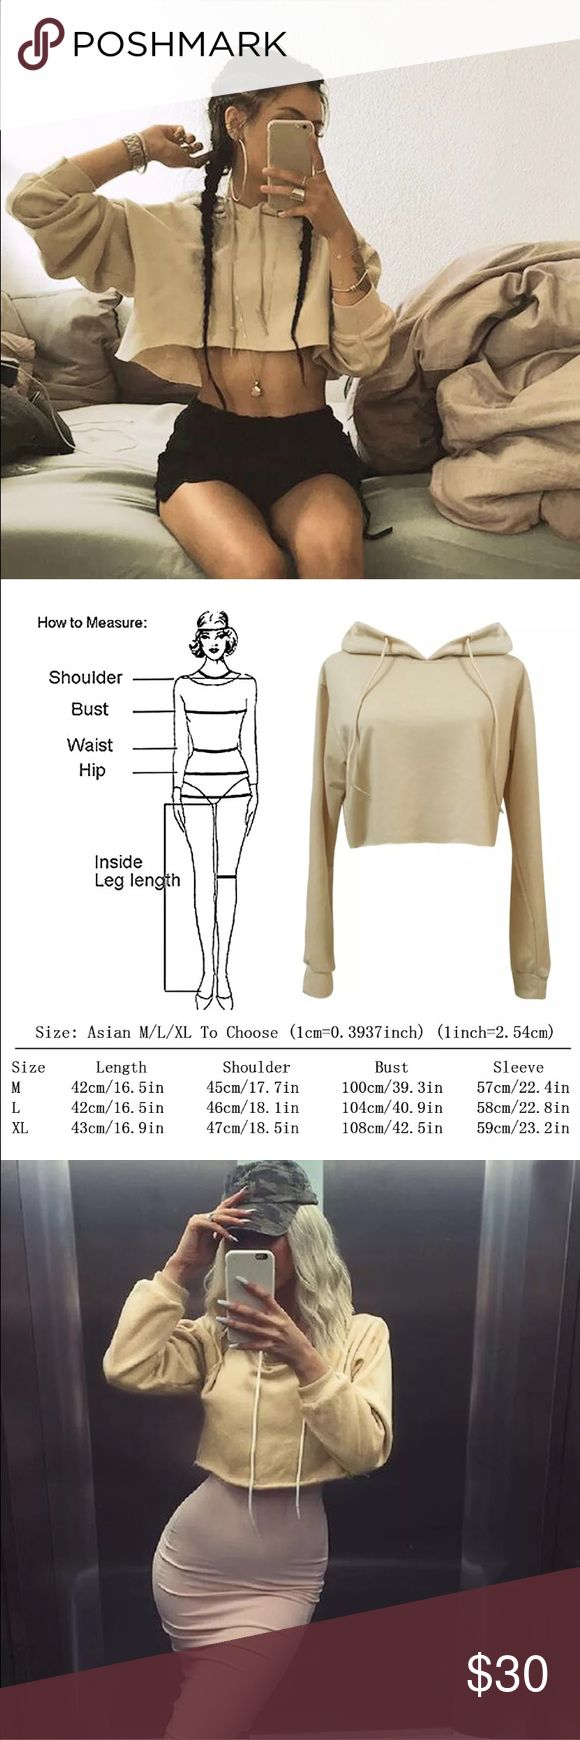 Hot new crop hoodie  Chic trendy celebrity hipster Kylie Jenner kardashian style crop pullover  hoodie  Material: cotton  Unbranded Please refer to size chart for sizing and measurements If the item doesn't fit you can not return *posh policy*  Color may be slightly different in person due to  picture lighting Remember every body type is different so the fit on you may not be exact like the model  NO TRADES Can take up to 10 business days to ship Only discount through bundles Tops…